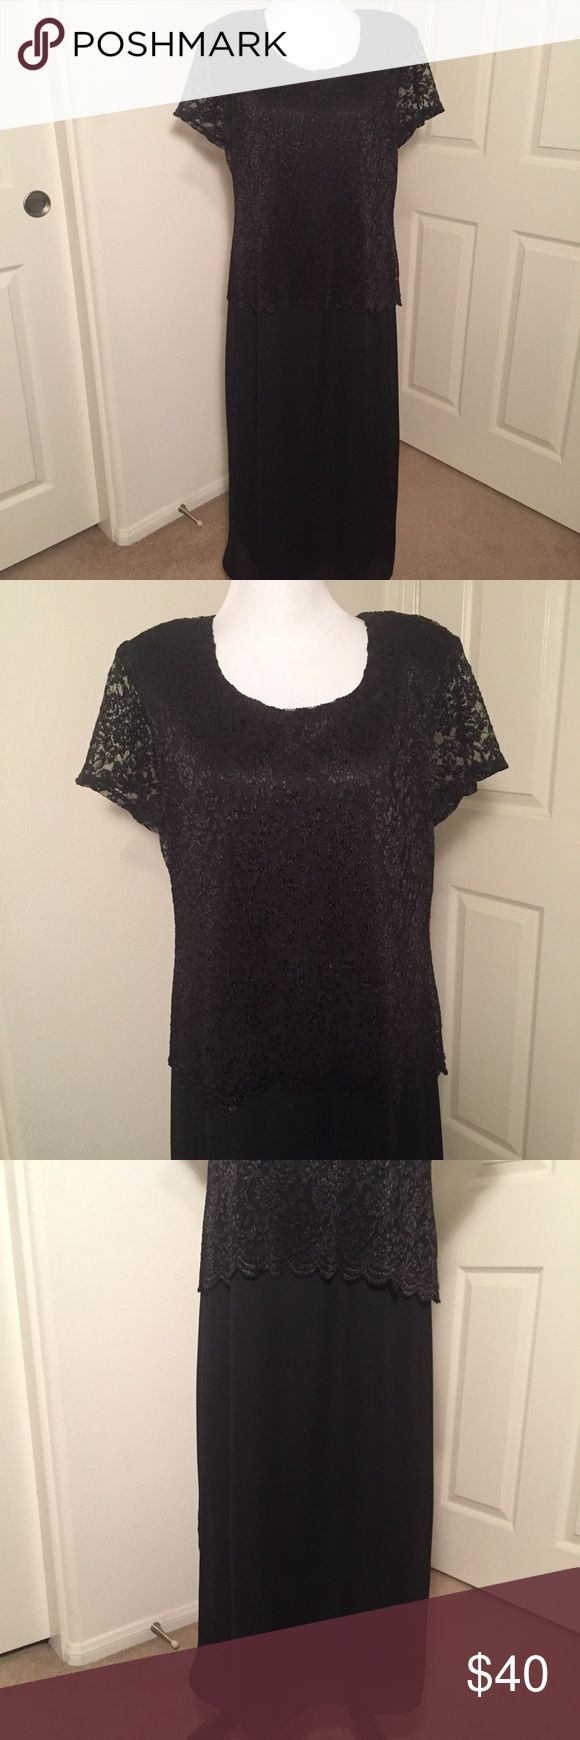 Petite Black Dress Helene Blake Black dress. Petite Size 14. Sleeves are sheer. Top has a nice lacey texture over the dress. Shoulder pads. Vintage dress. Excellent condition. 100% Polyester. Smoke free and pet free home. Bundle 2 or more items and get 15% off! Offers welcomed! 🙌 Helene Blake Dresses